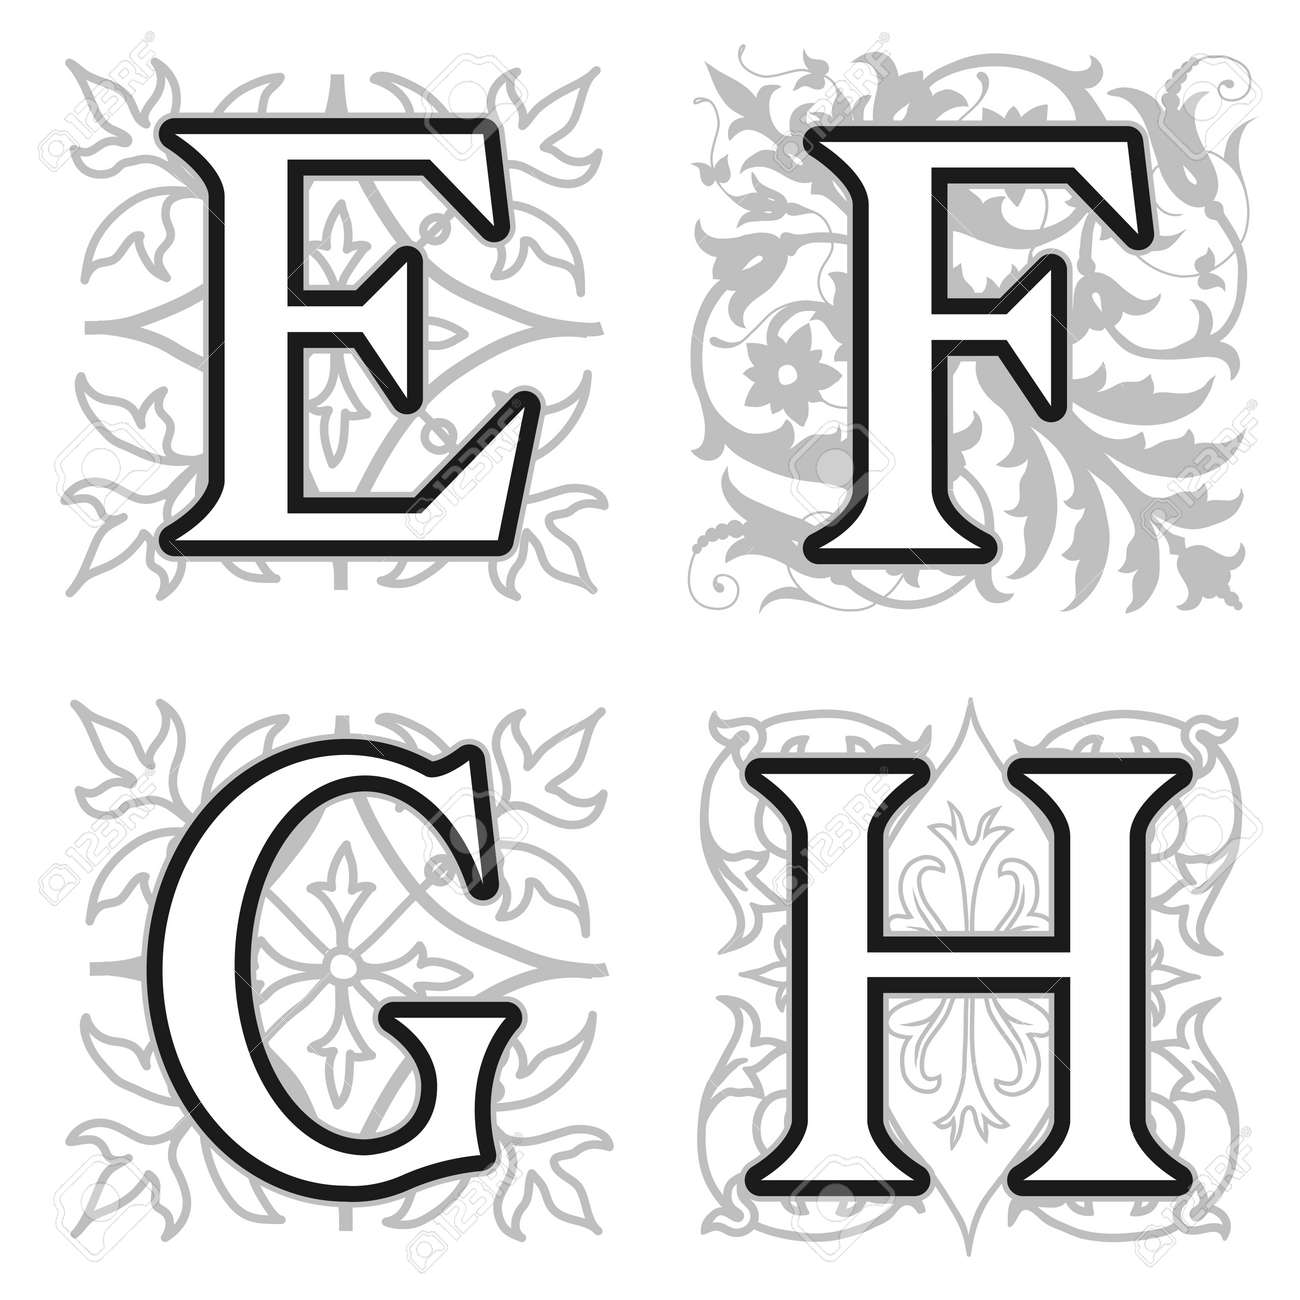 Decorative e f g h alphabet letters with vintage floral elements decorative e f g h alphabet letters with vintage floral elements in different altavistaventures Choice Image